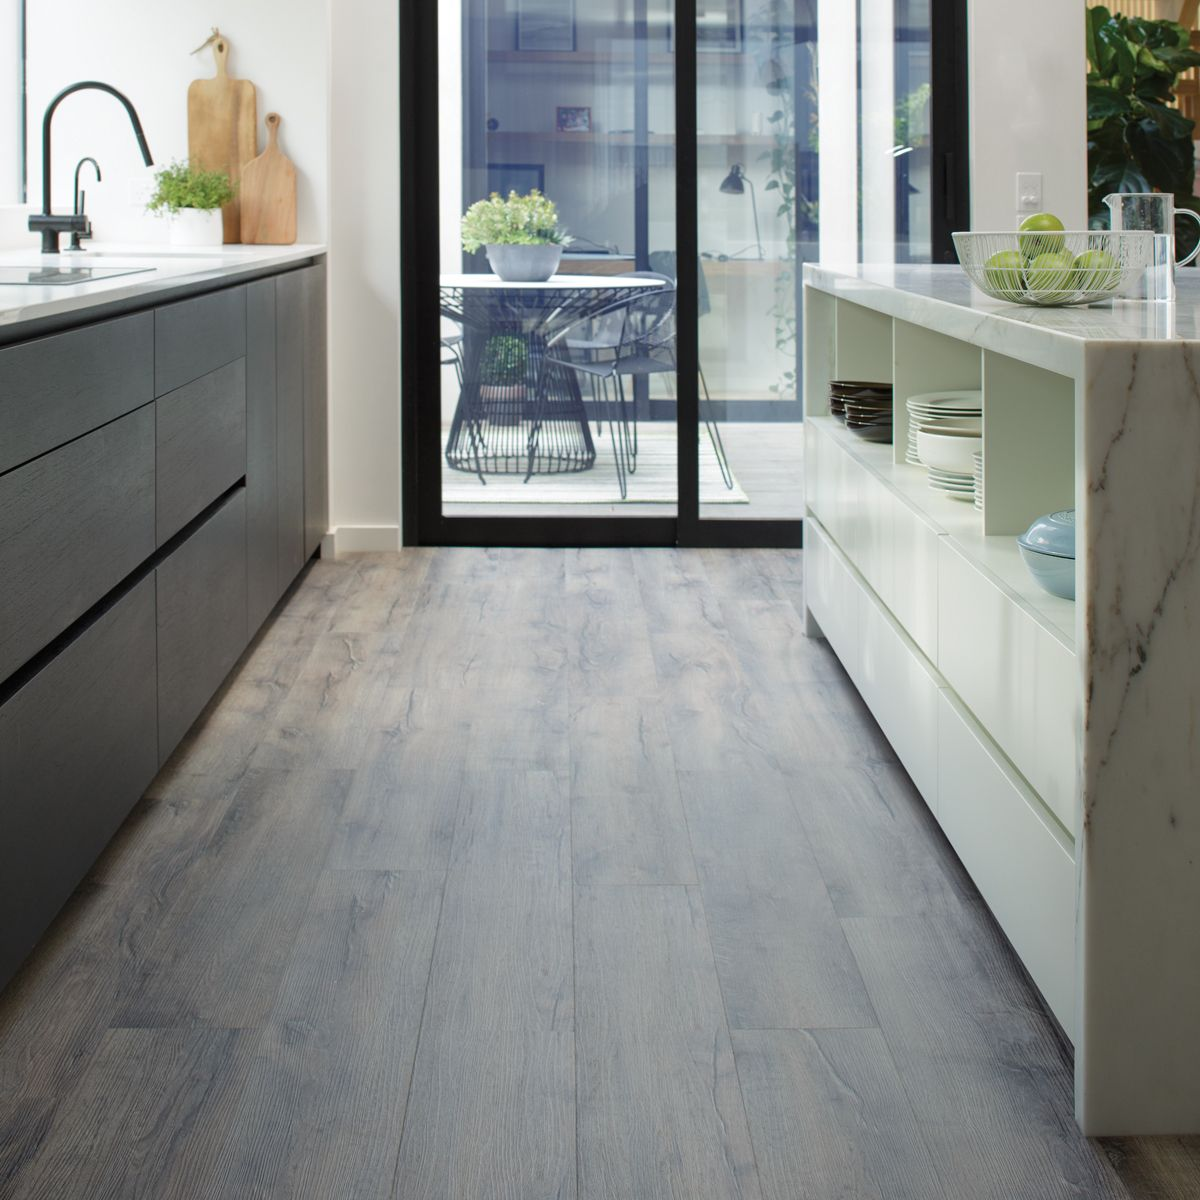 The Best Low Maintenance Flooring For Rentals And Holiday Homes Choices Flooring Choices Flooring Best Flooring Flooring